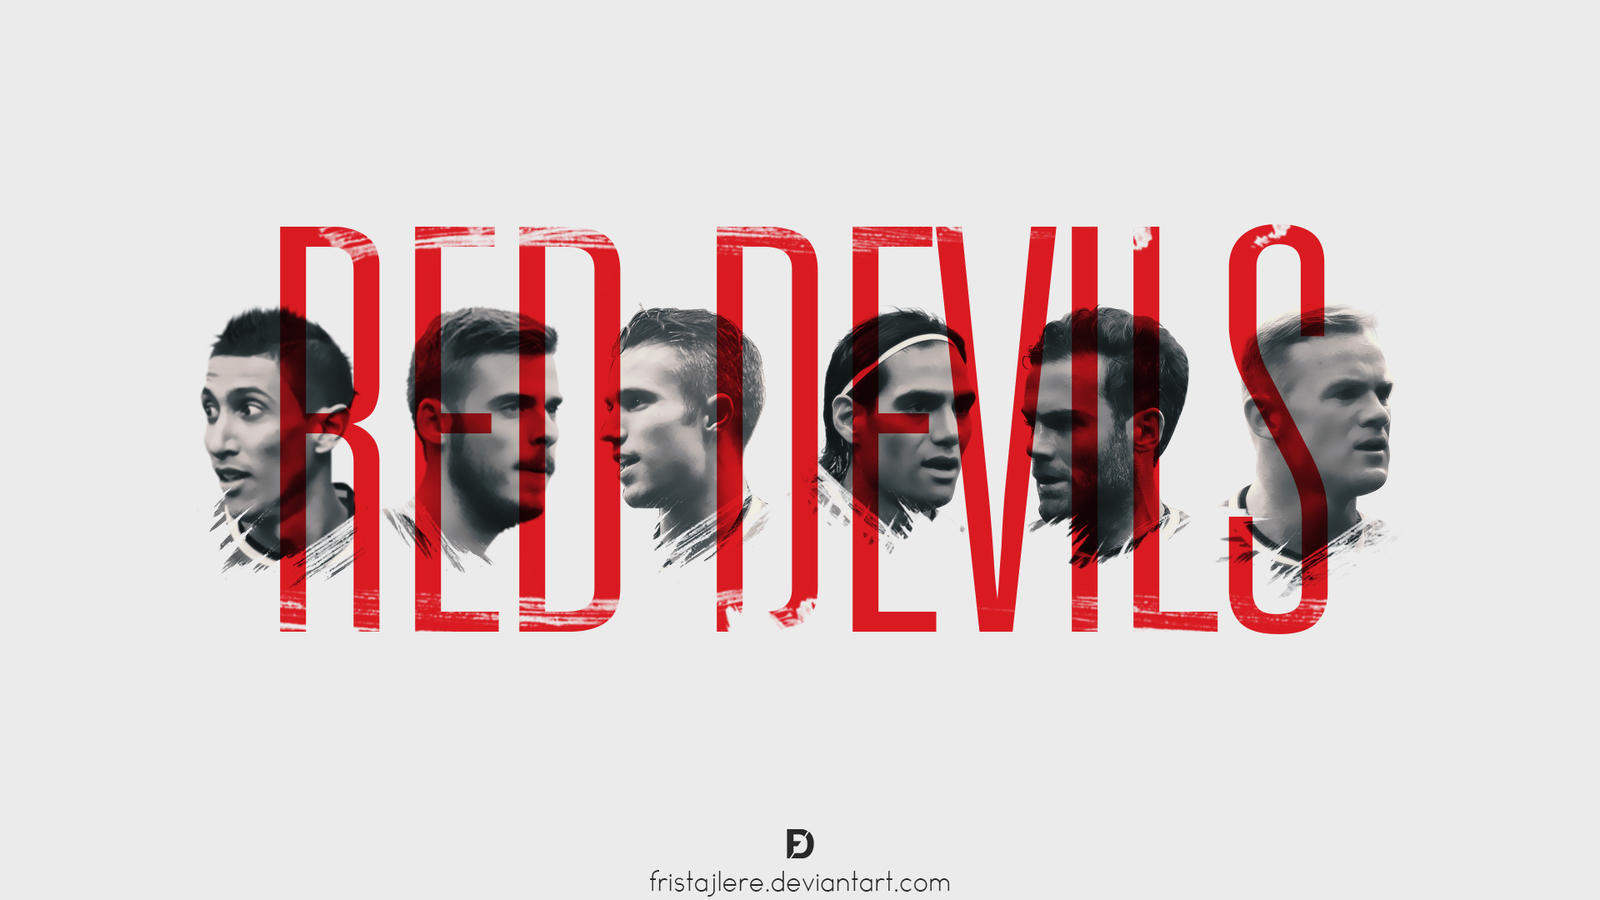 Manchester United Wallpapers Red Devils By Fristajlere